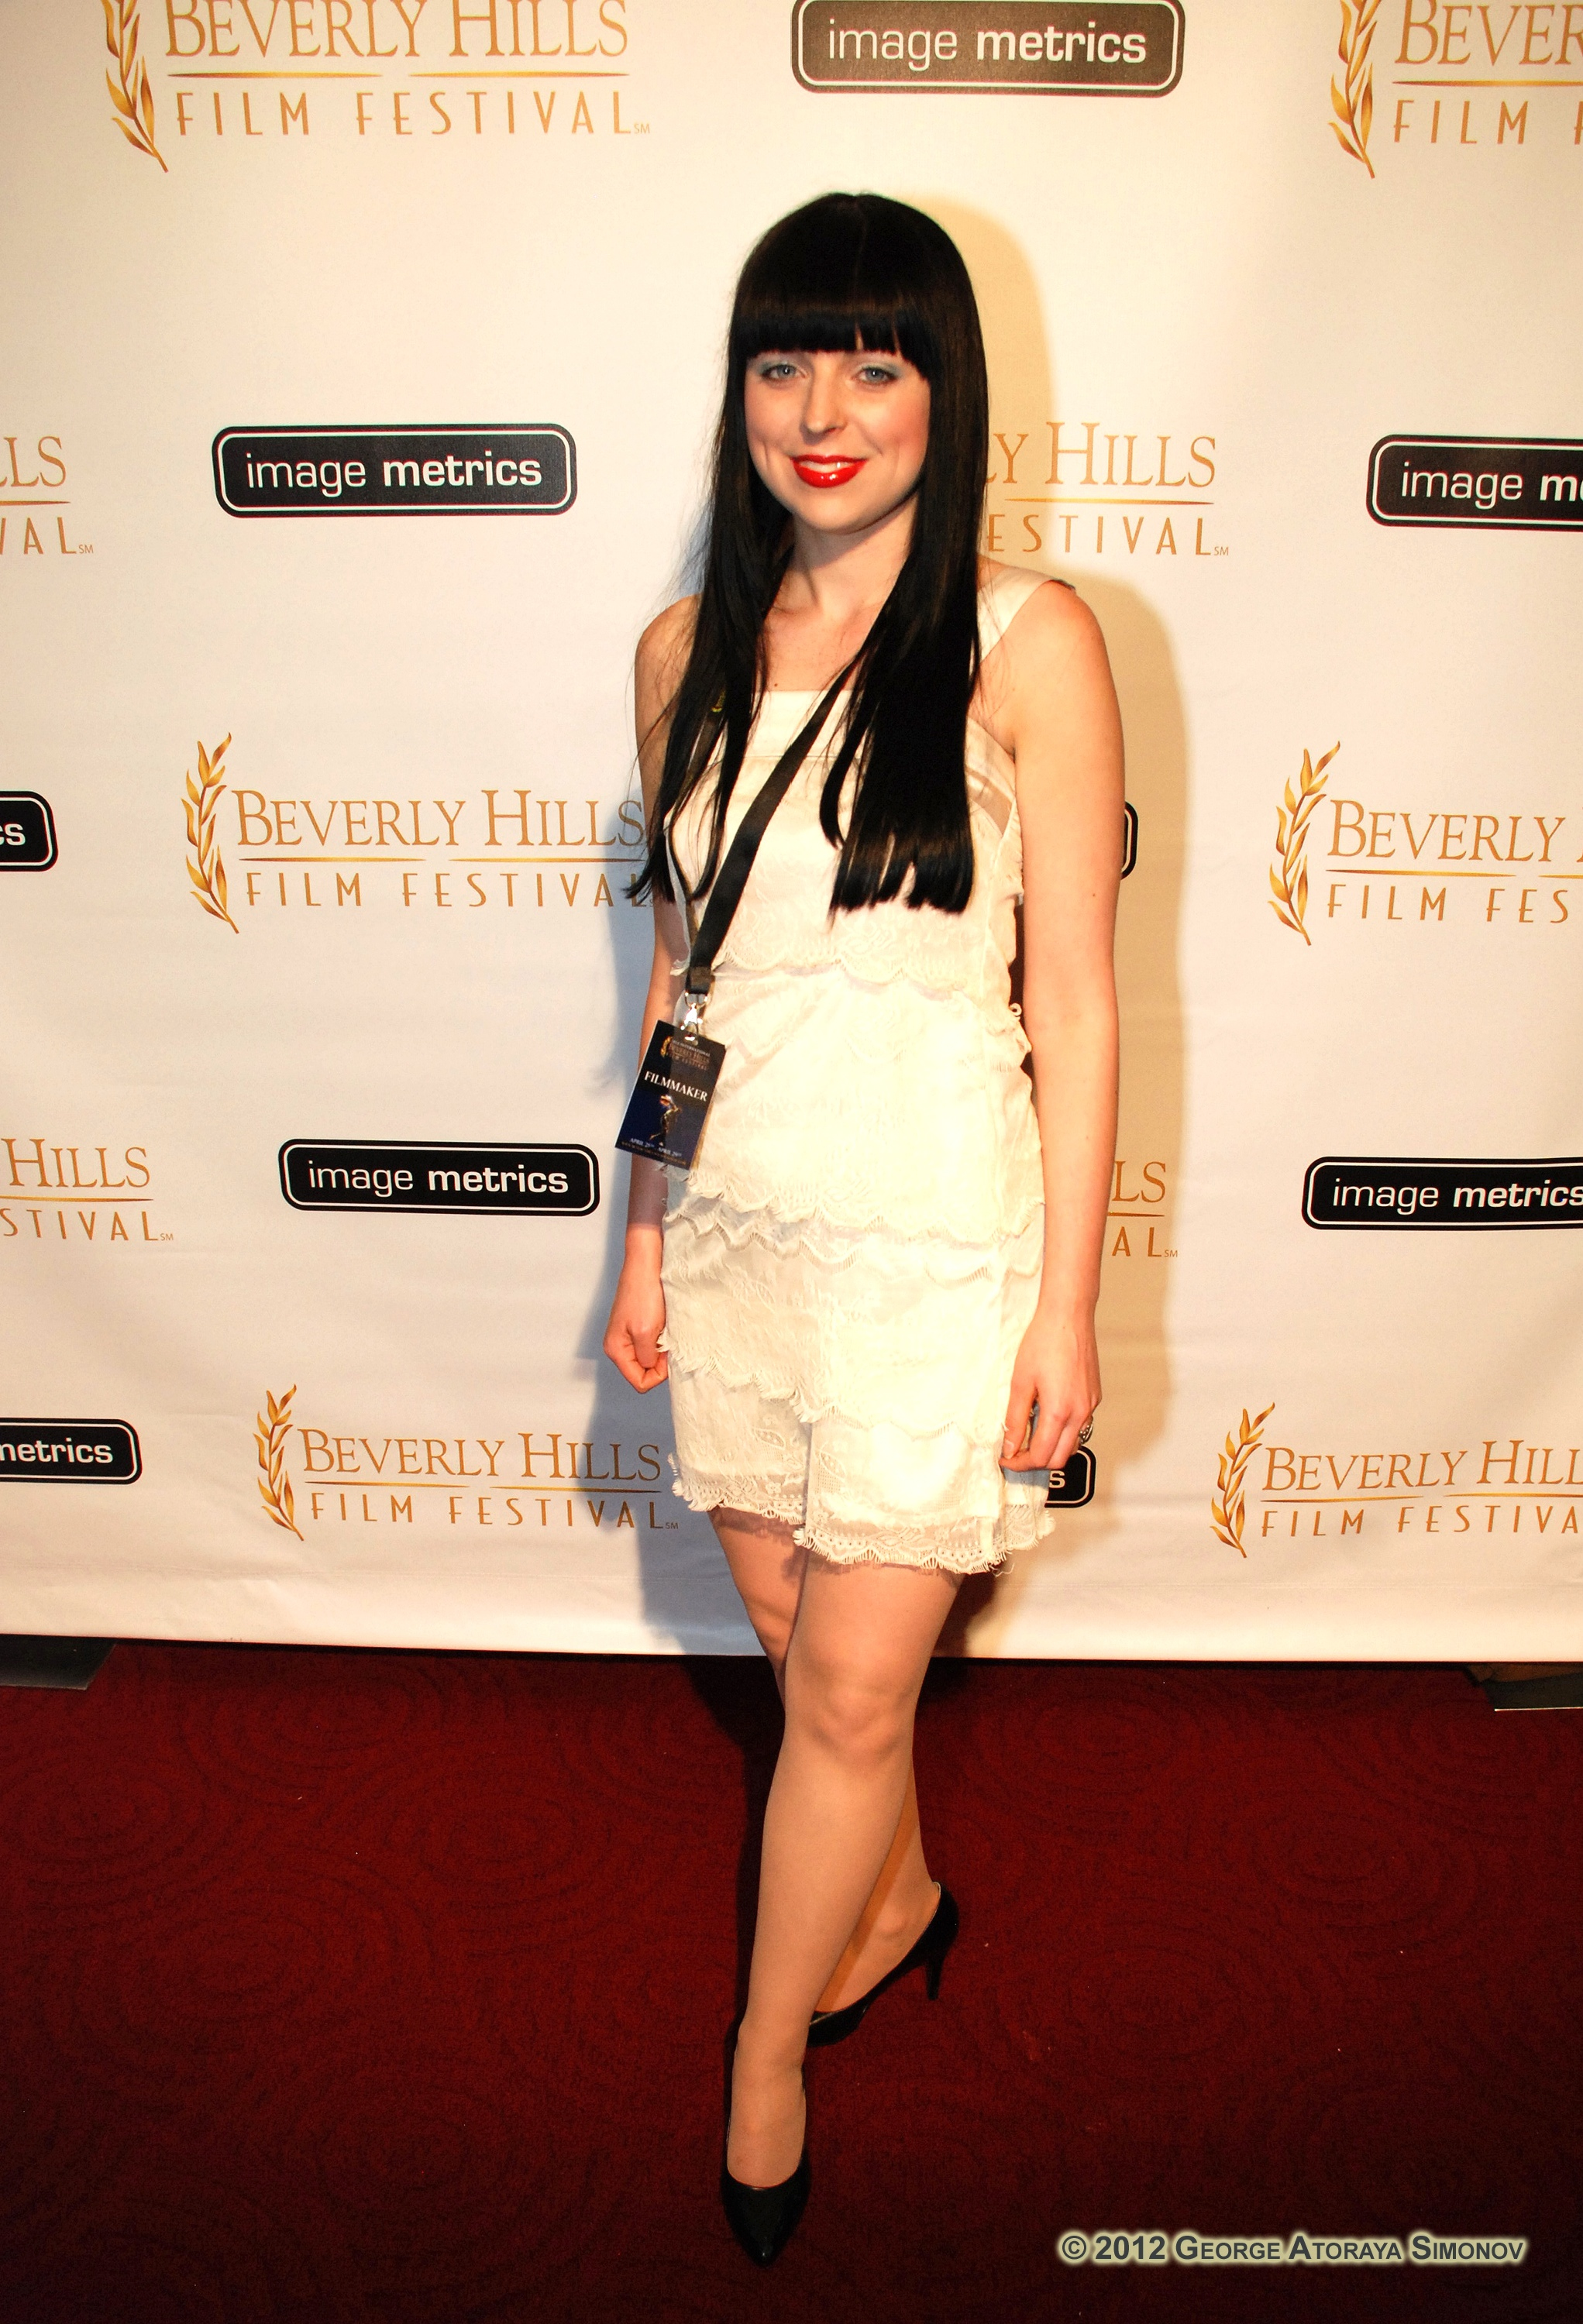 Mel Miskell at 2012 Beverly Hills Film Festival Opening Night